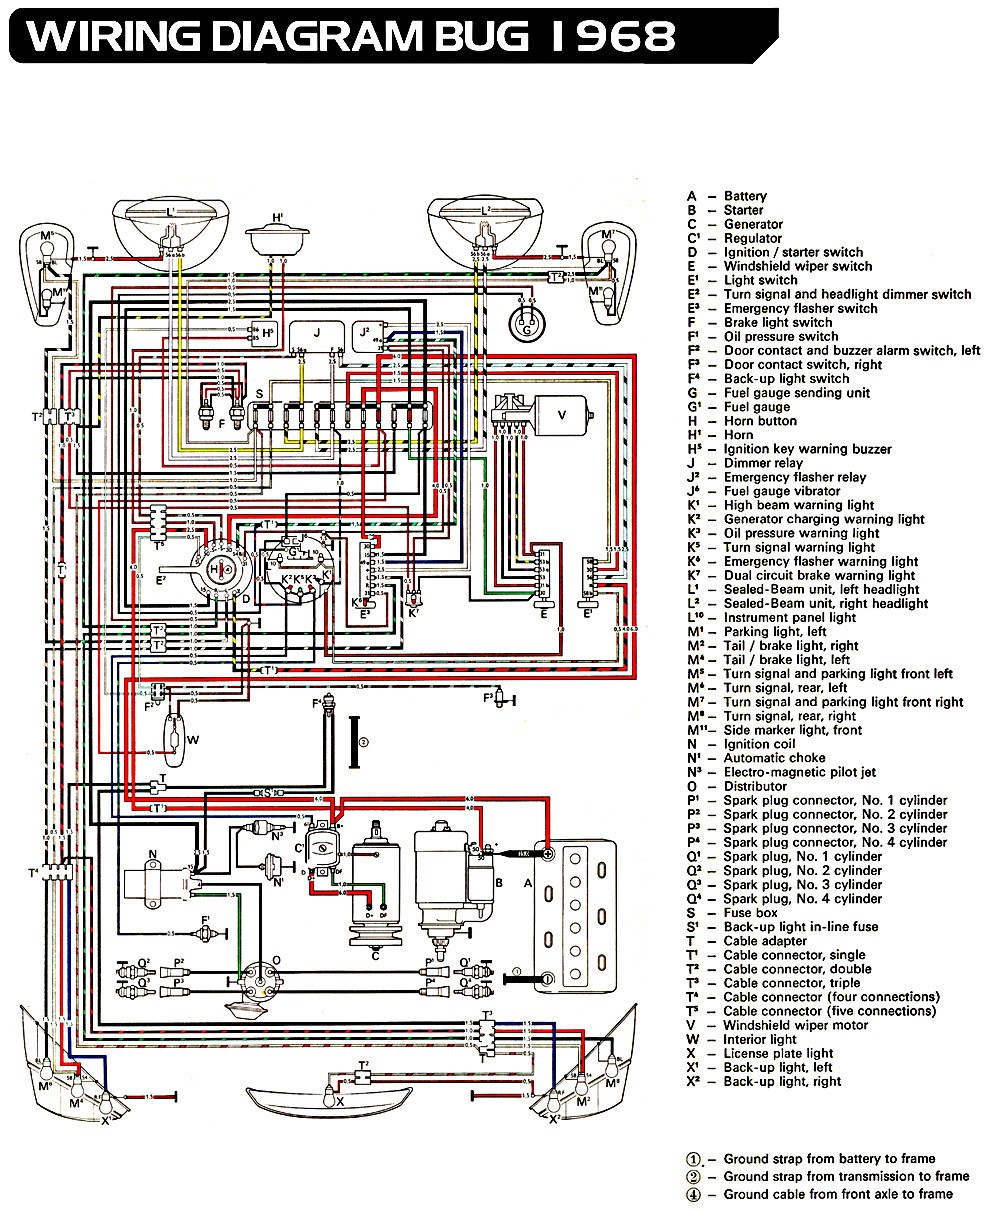 Wire Diagram For 1972 Beetle -Ford Wiper Motor Wiring Color | Begeboy Wiring  Diagram SourceBegeboy Wiring Diagram Source